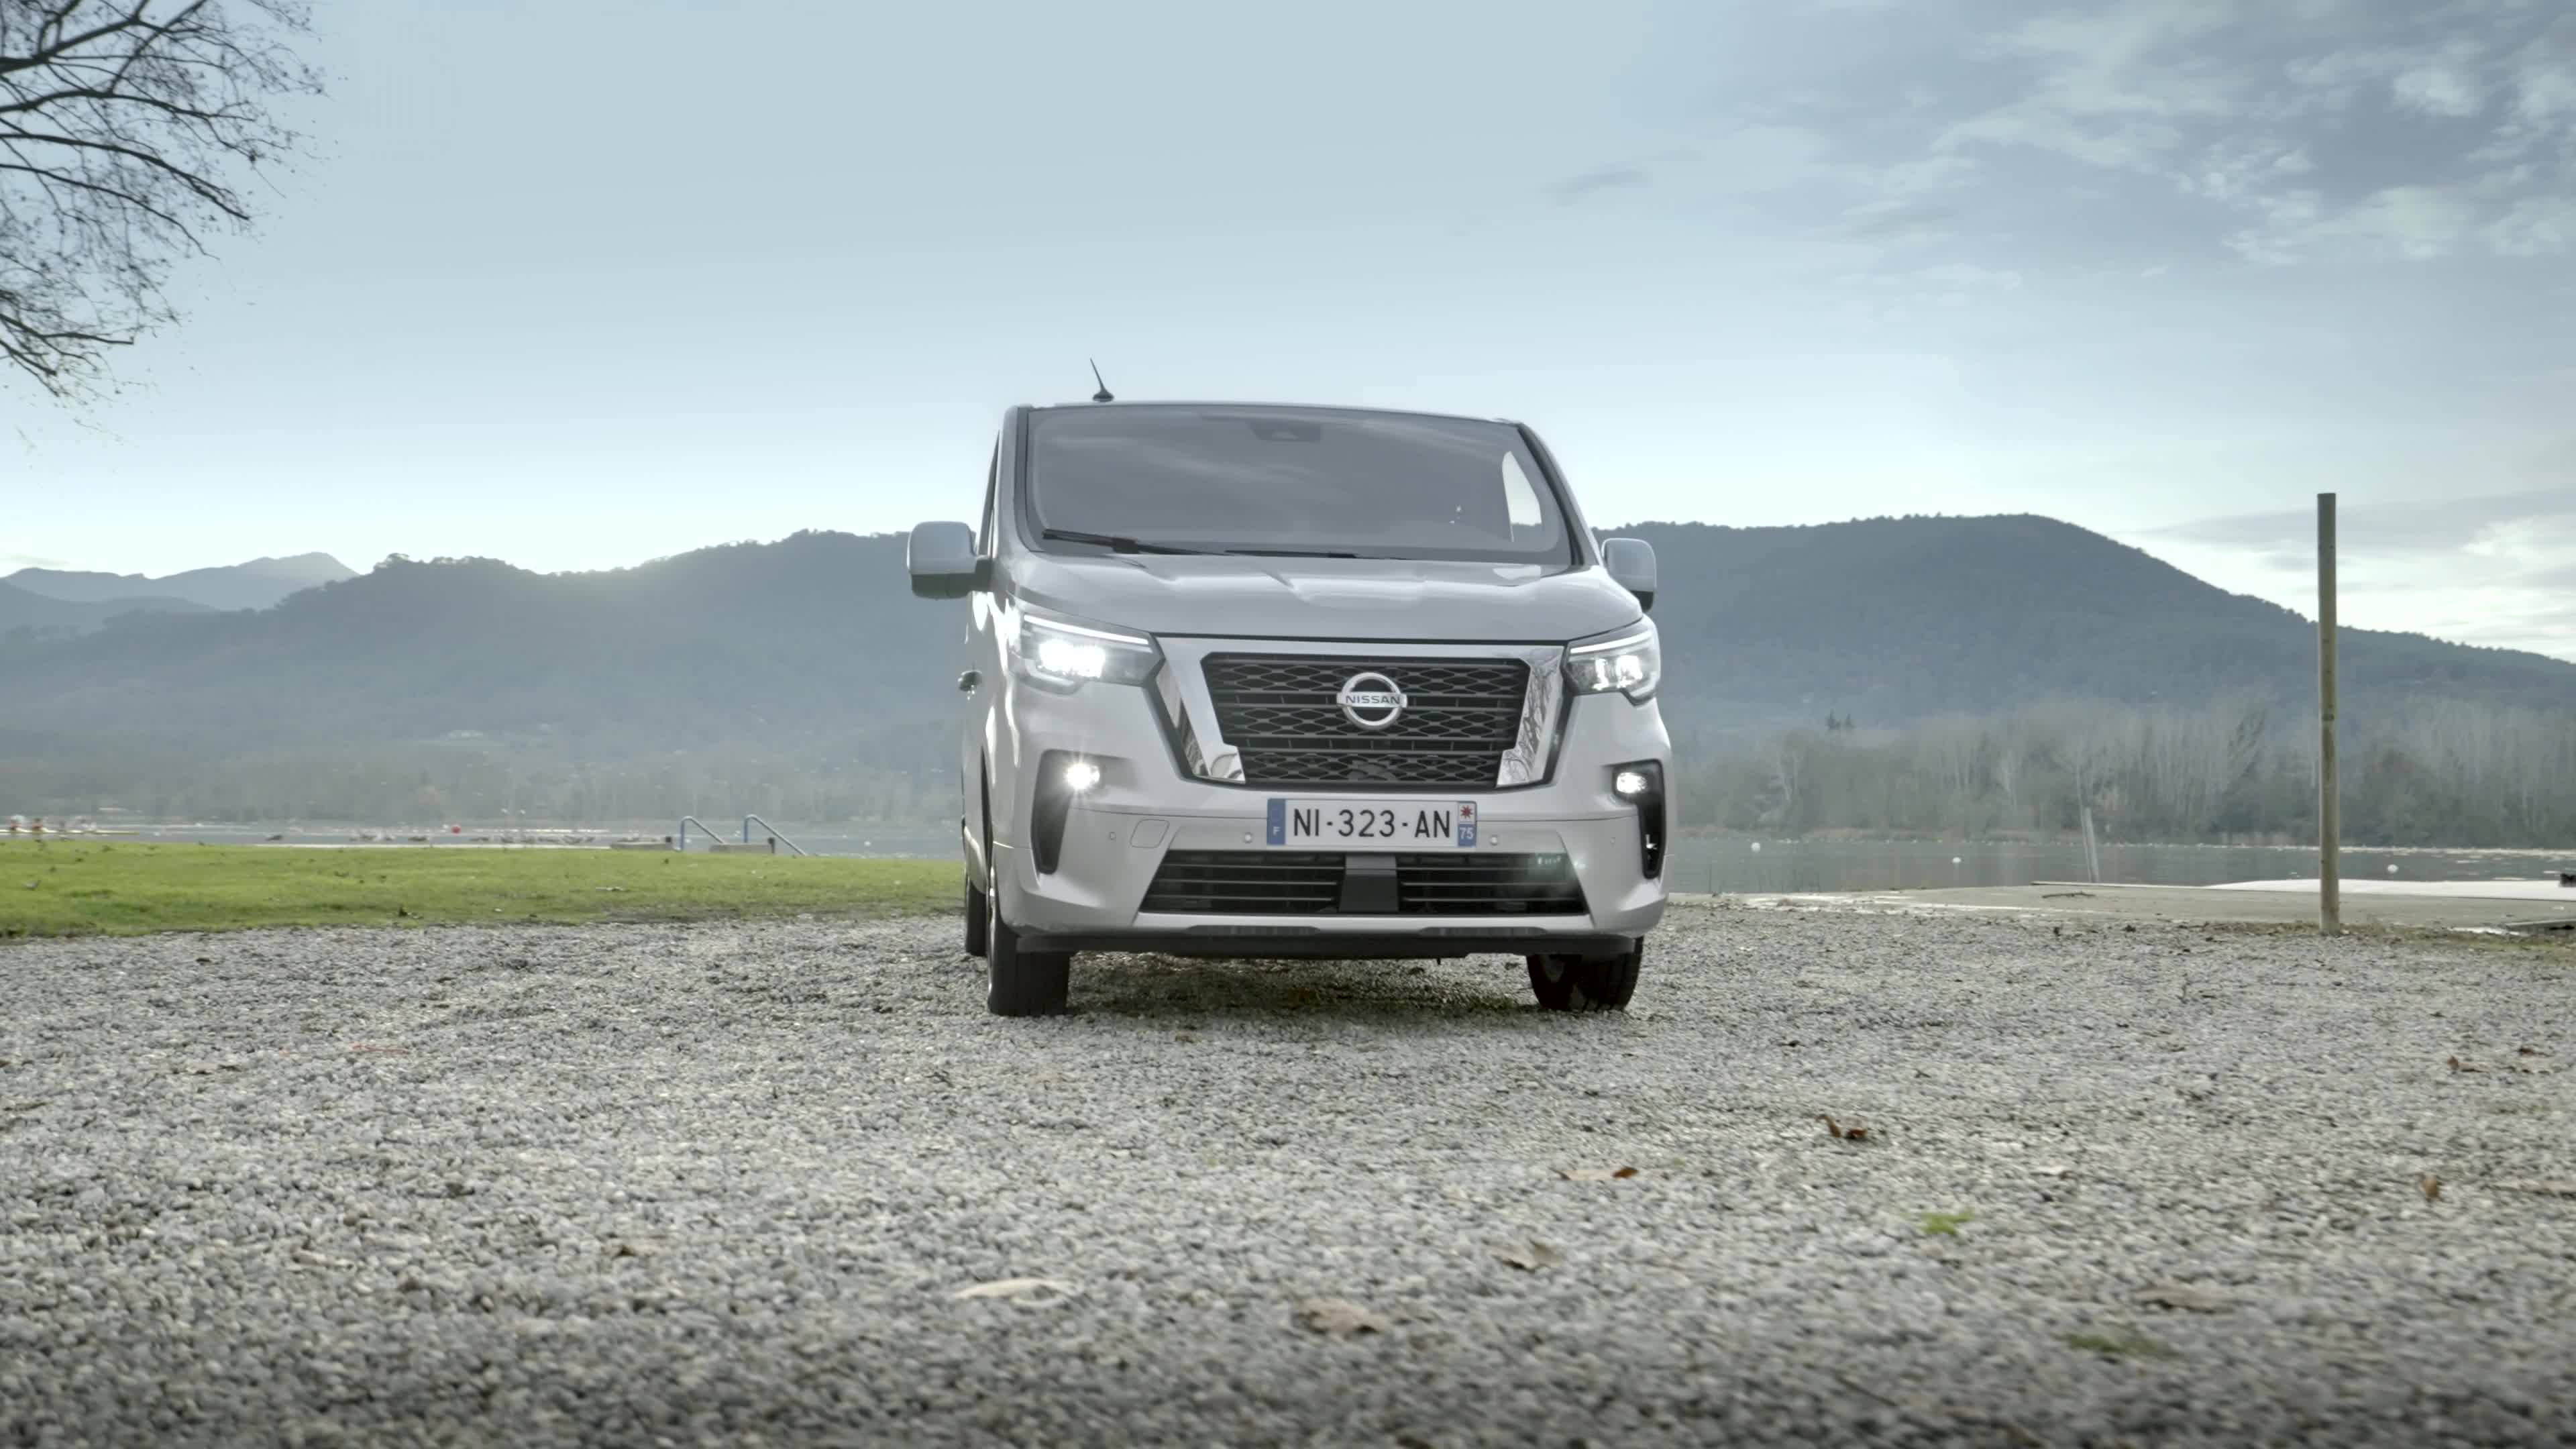 Nissan upgrades the NV300 Combi with sharper look and feel, enhanced powertrain and new safety technologies - Image 3